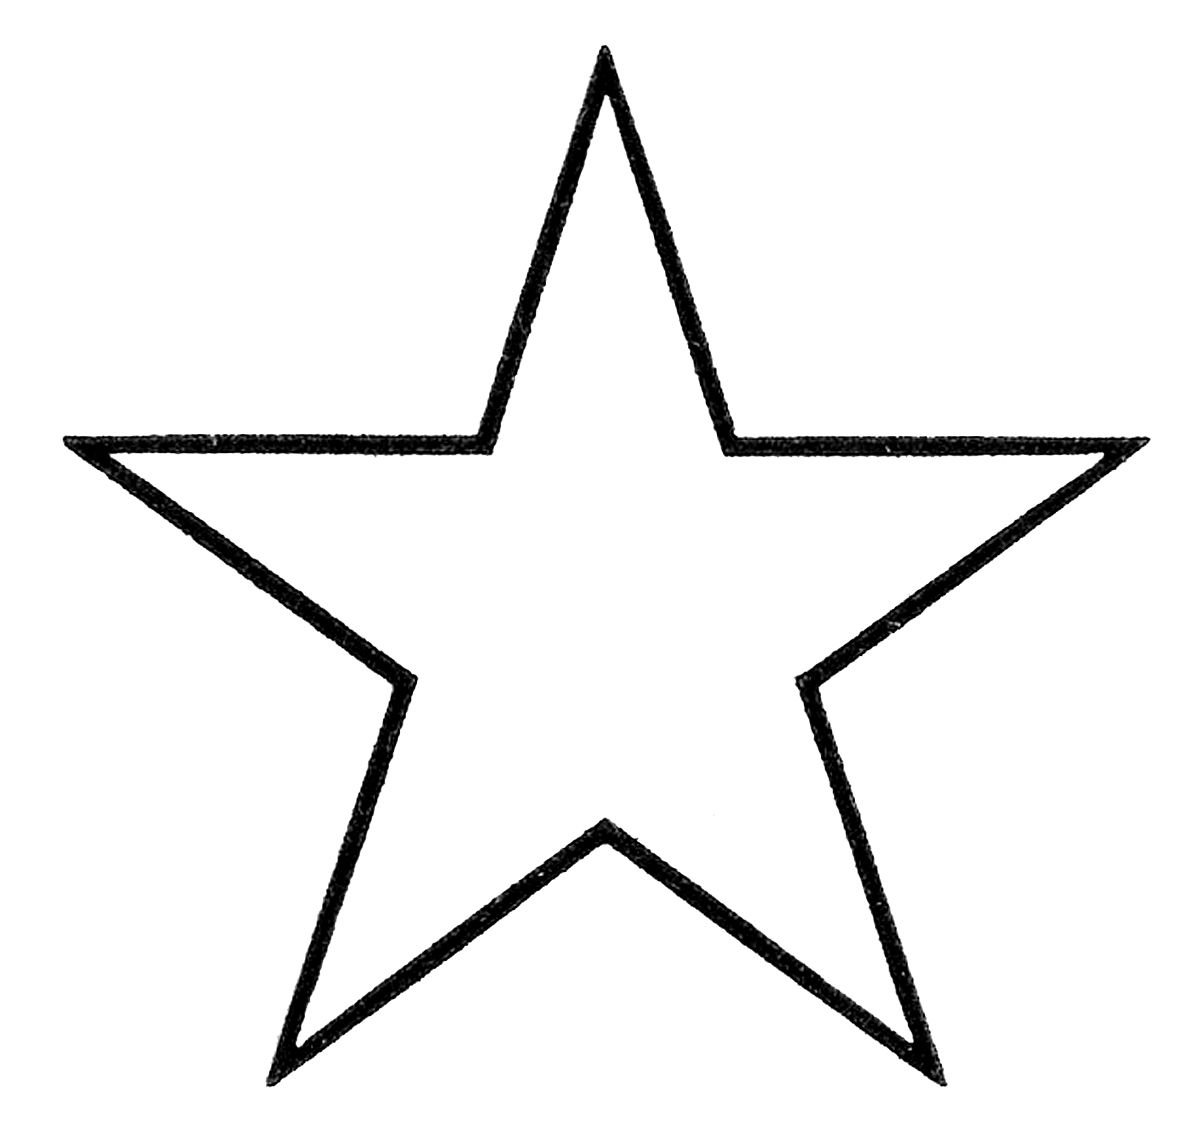 small resolution of free star clipart images for teachers students web designers crafters etc to use in projects printables reports